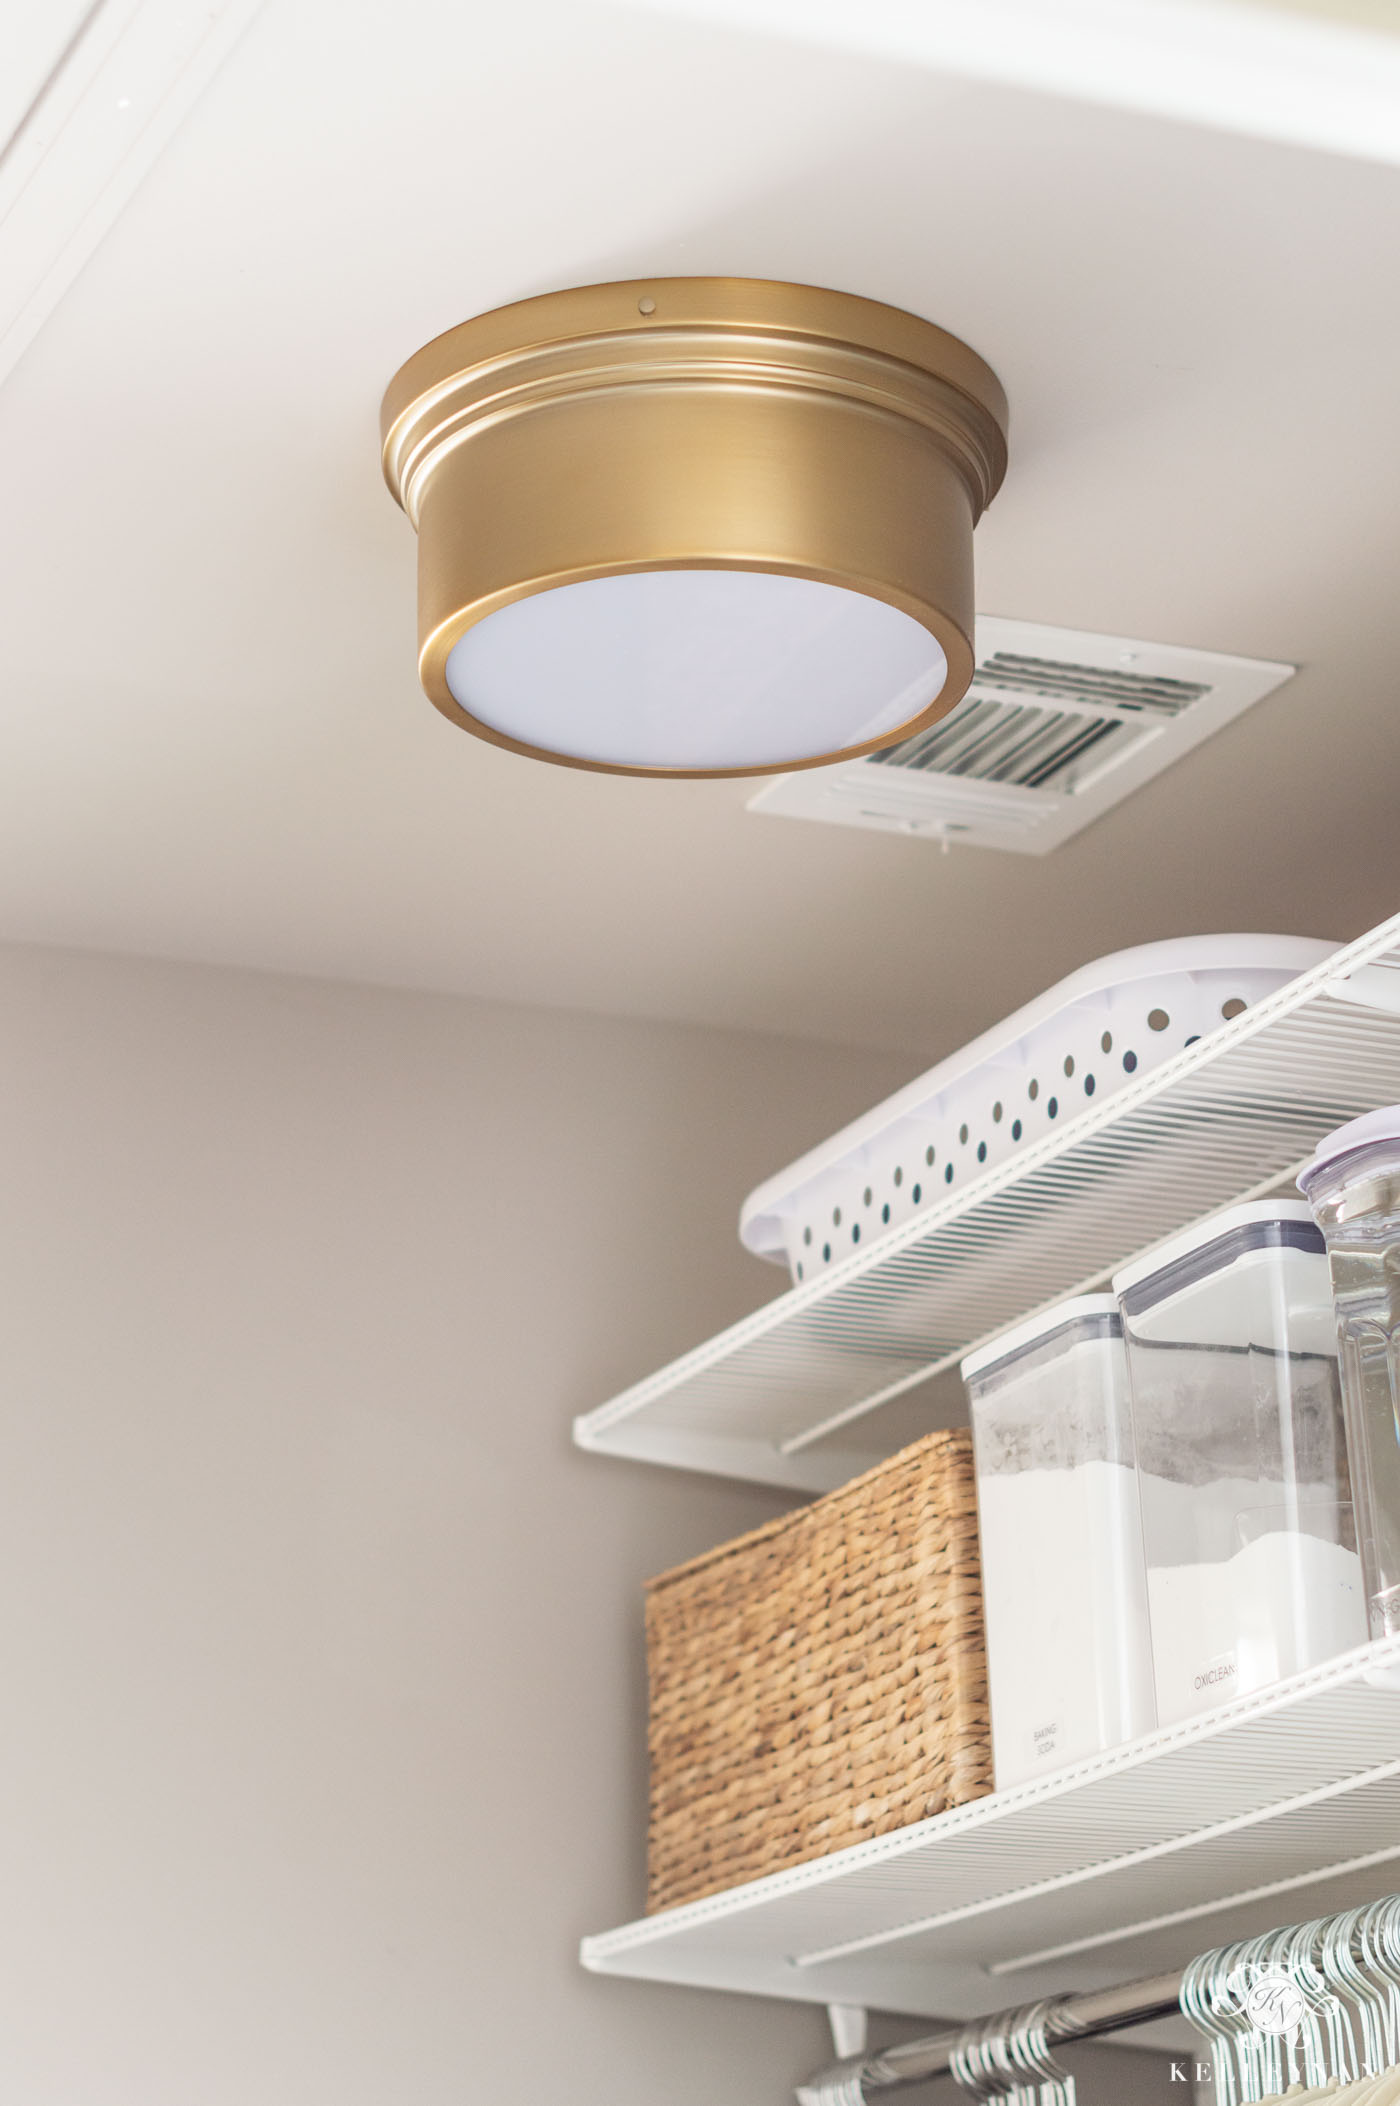 Stylish laundry room lighting -- a budget-friendly flush mount fixture